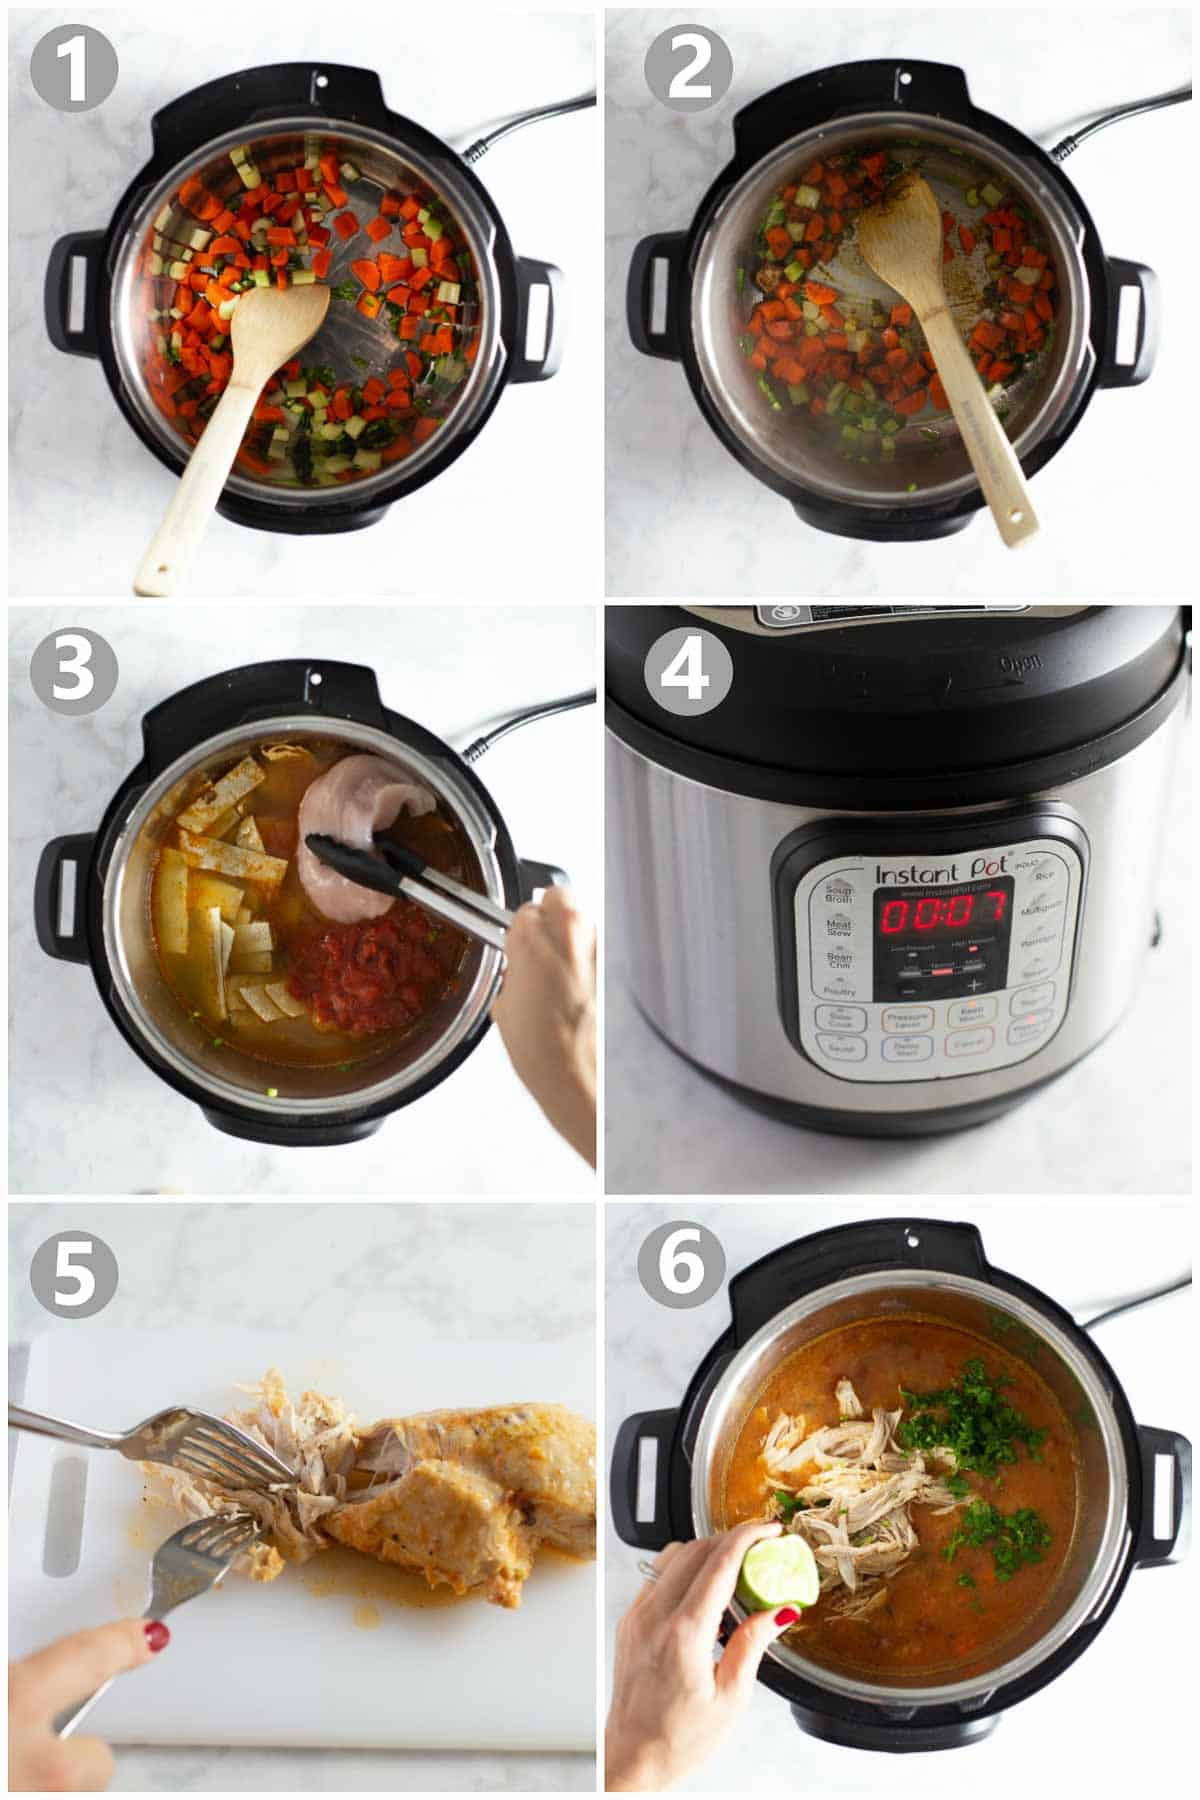 step-by-step instructions of how to make instant pot chicken tortilla soup recipe